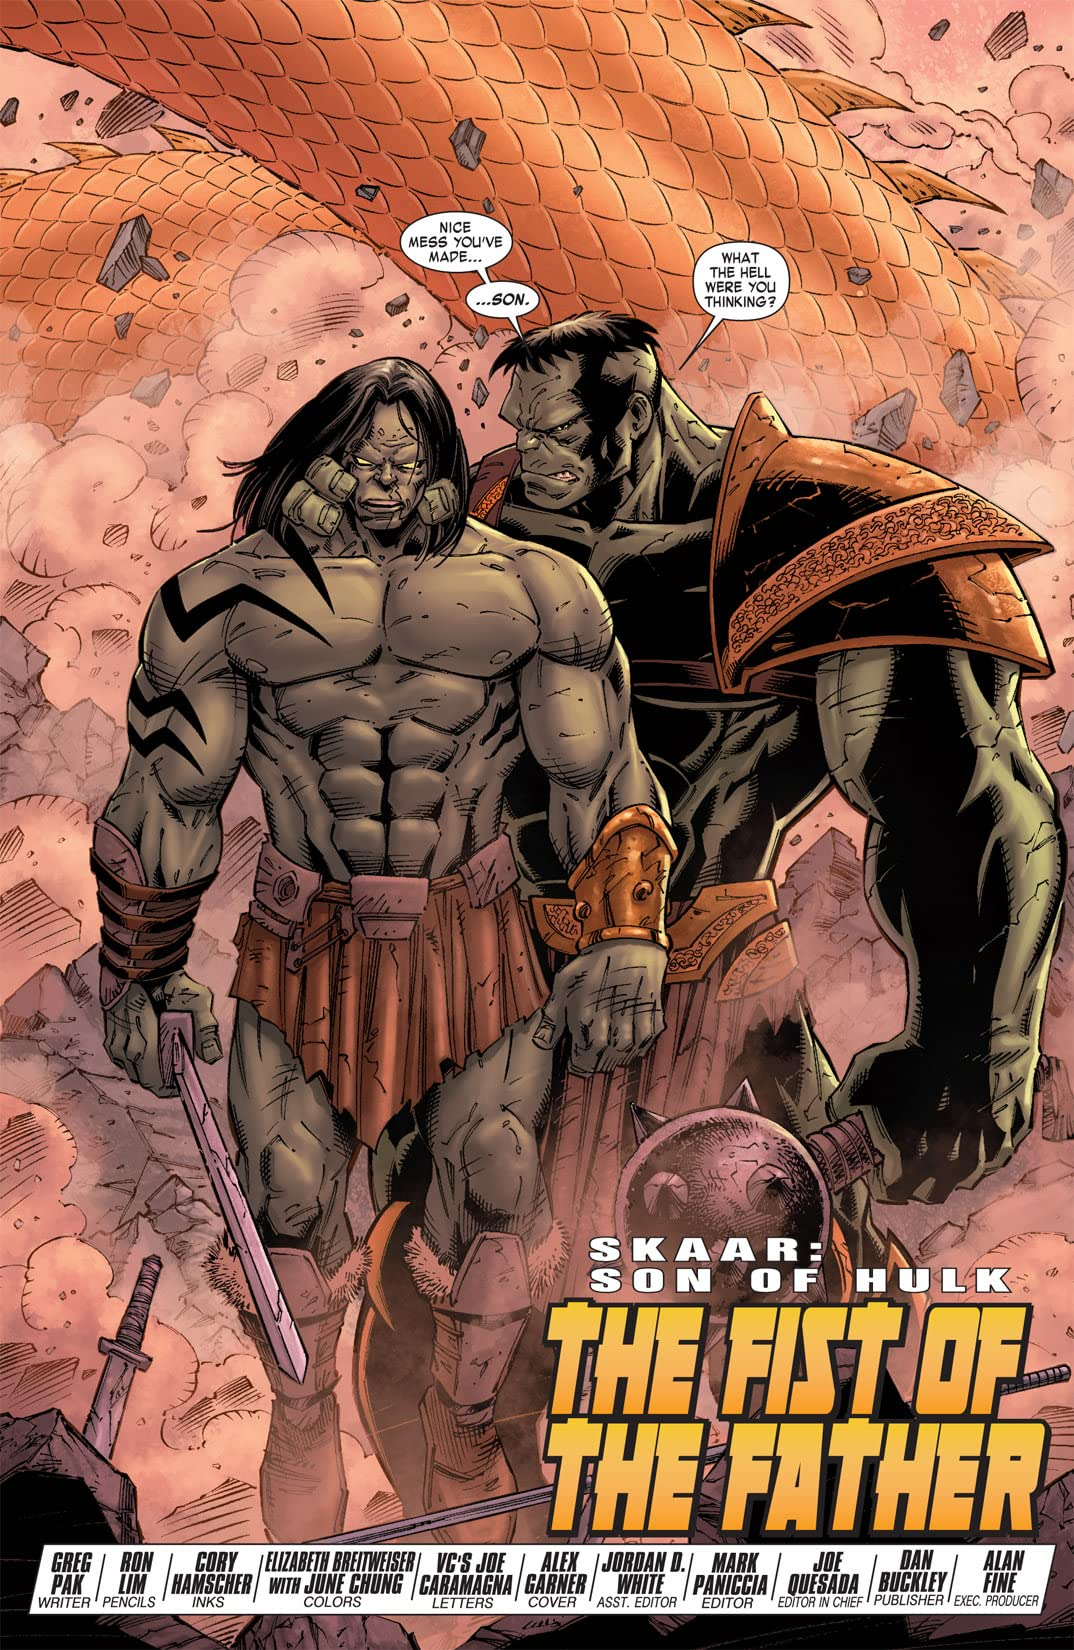 Skaar: Son of Hulk #9